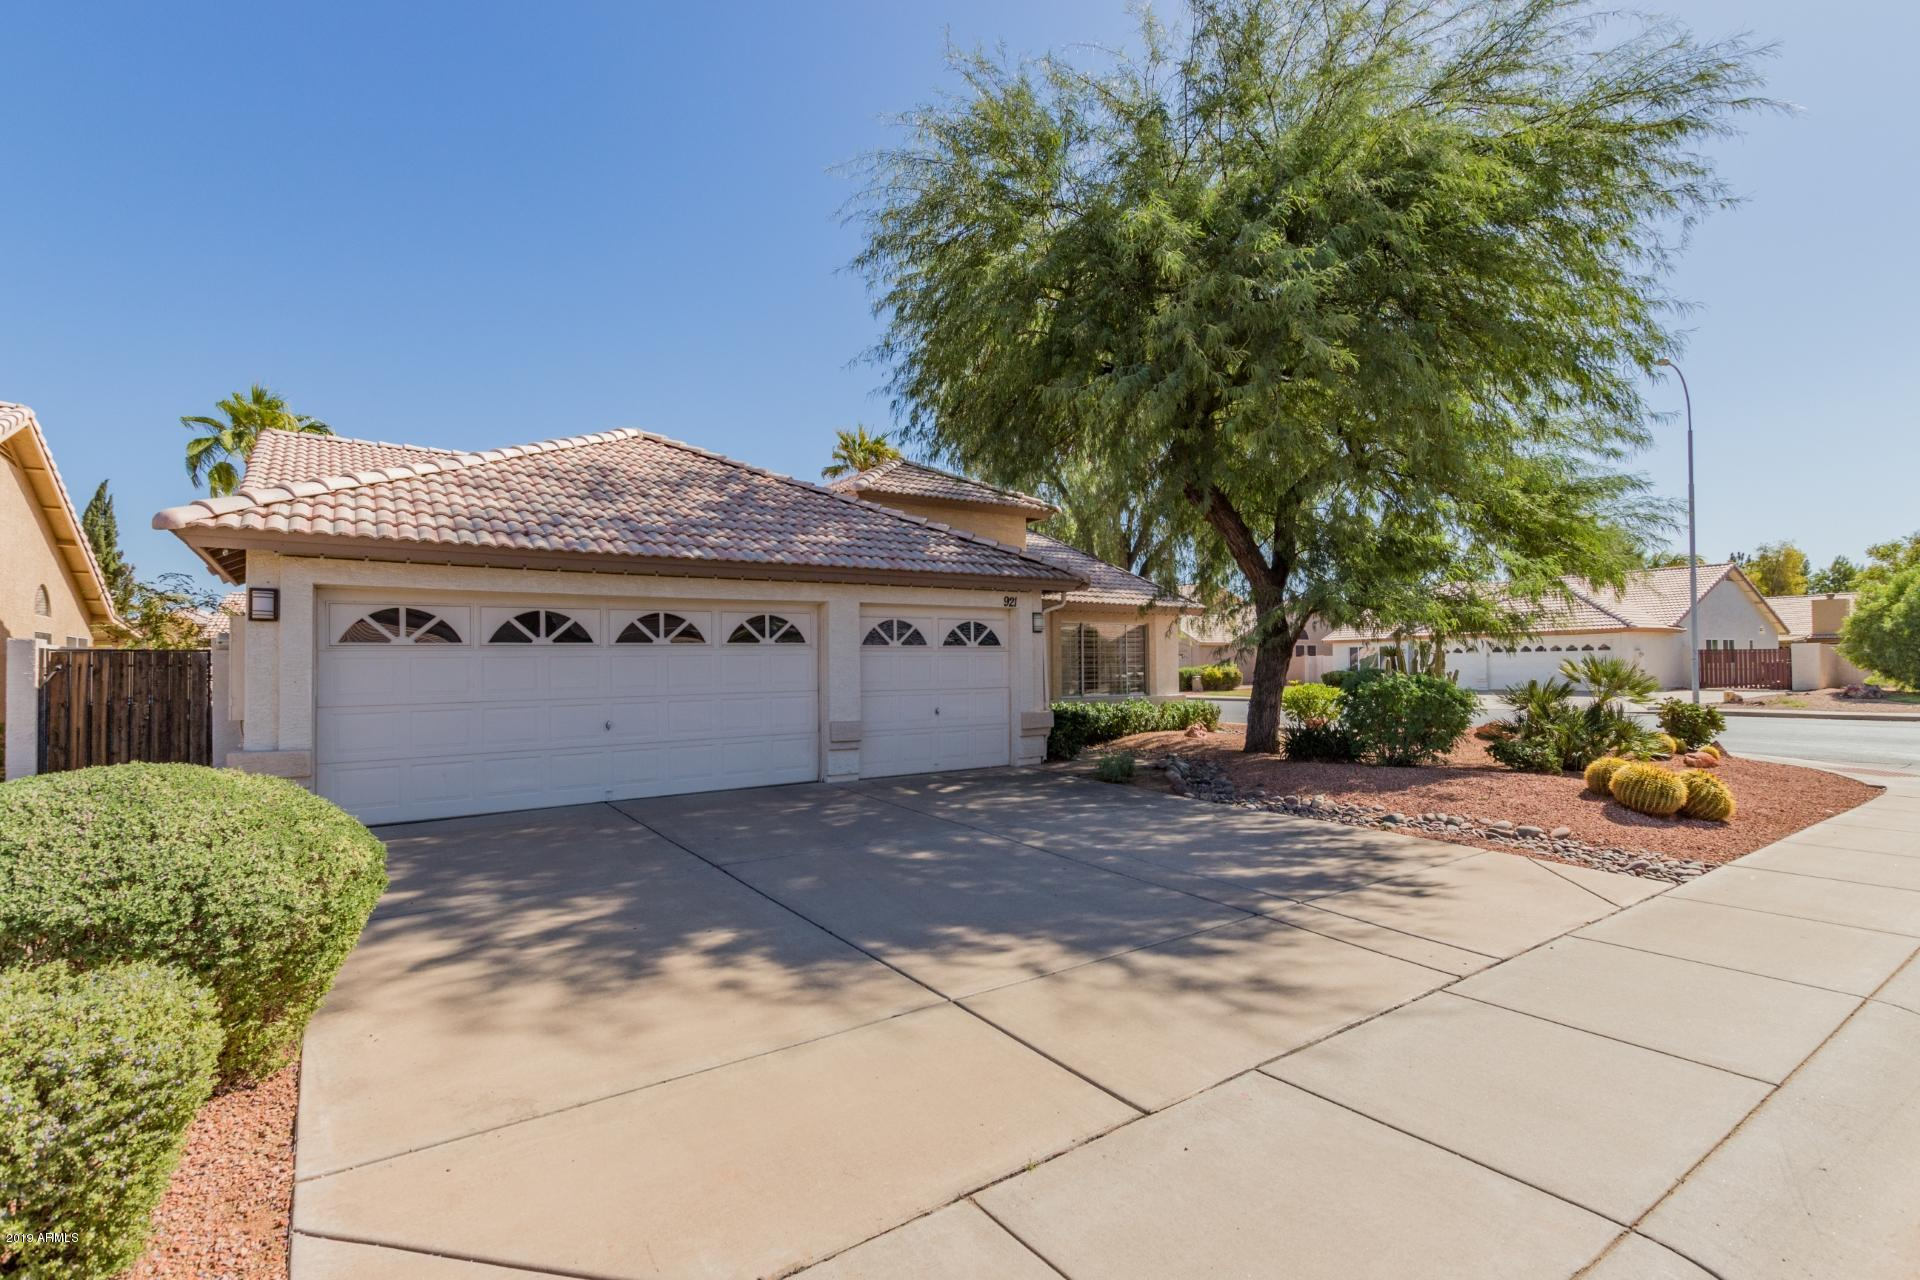 Photo of 921 N Criss Street, Chandler, AZ 85226